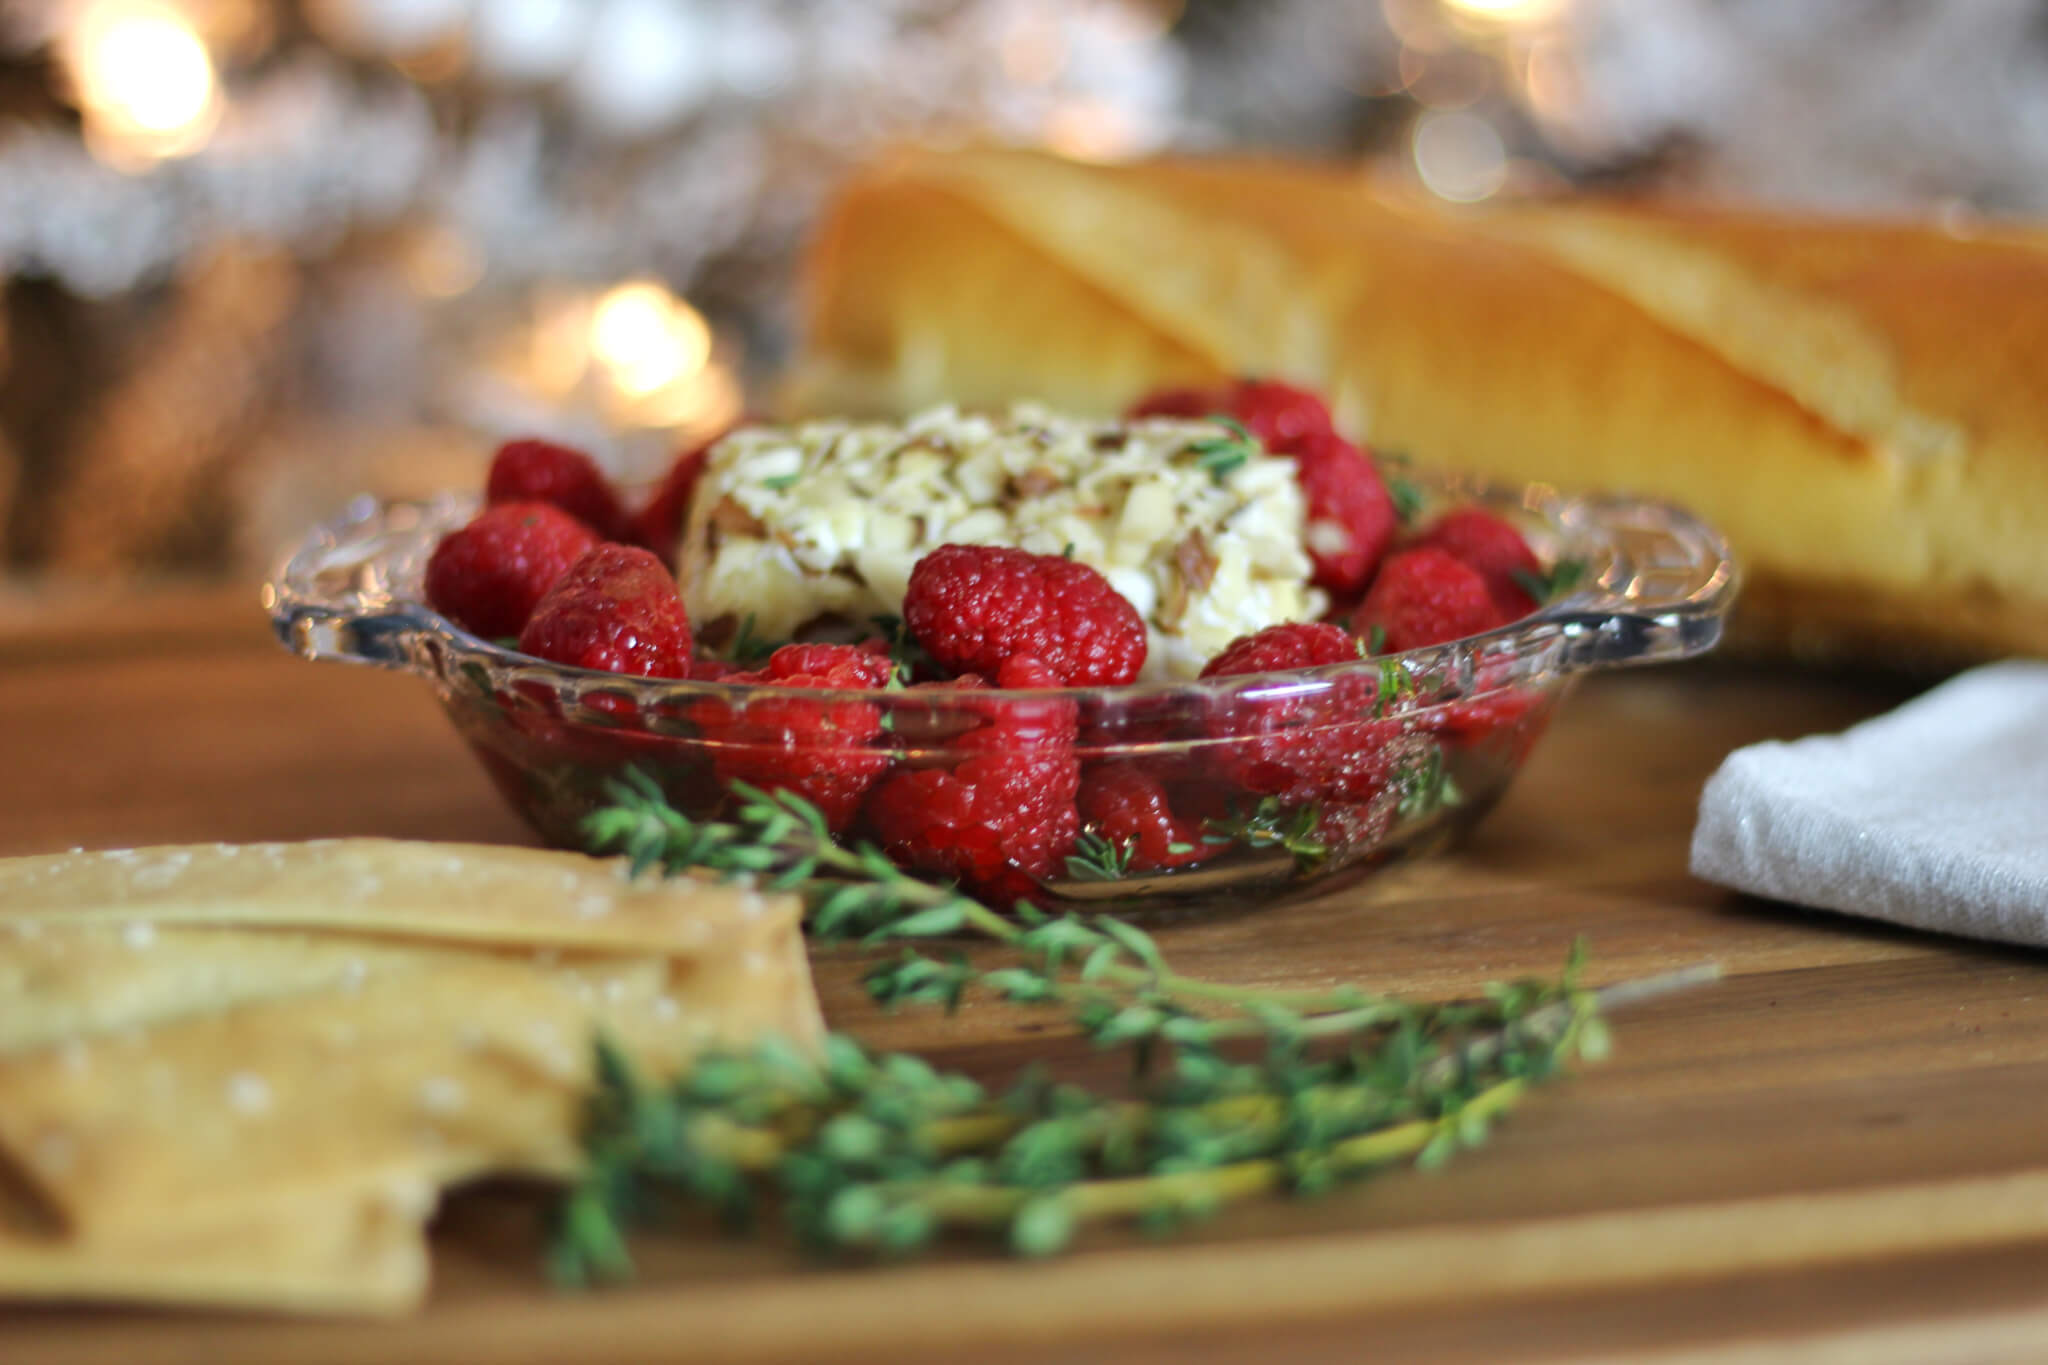 Baked Goat Cheese and Balsamic Raspberry Dip